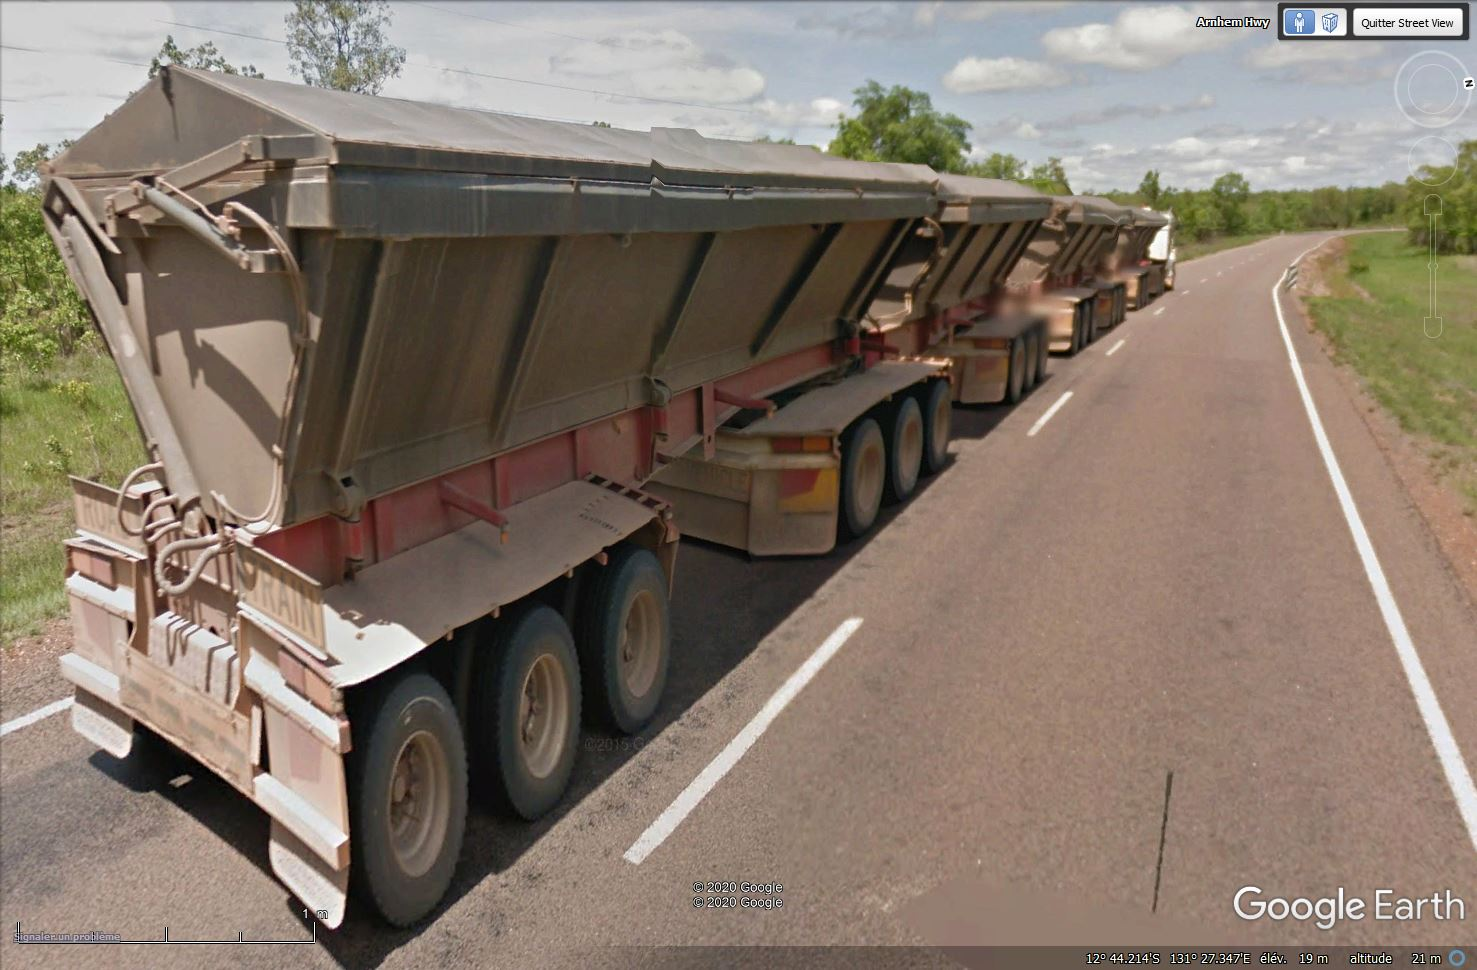 Camions australiens (road trains) - Page 6 Tsge1377